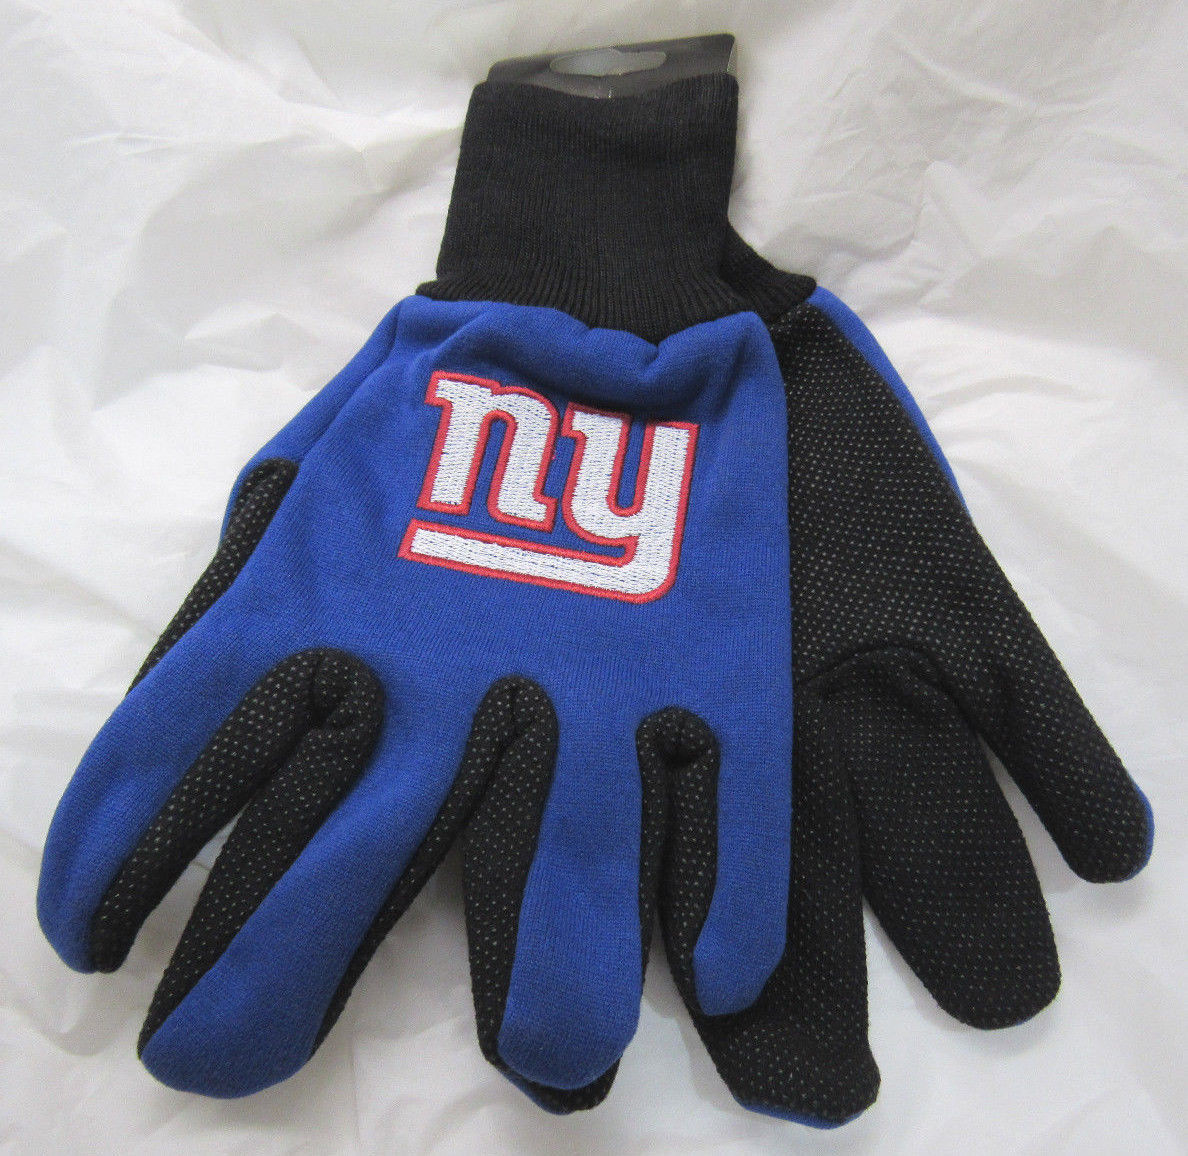 NFL NWT NO SLIP UTILITY WORK GLOVES - NEW YORK GIANTS - BLUE W/ BLACK PALM - $8.99